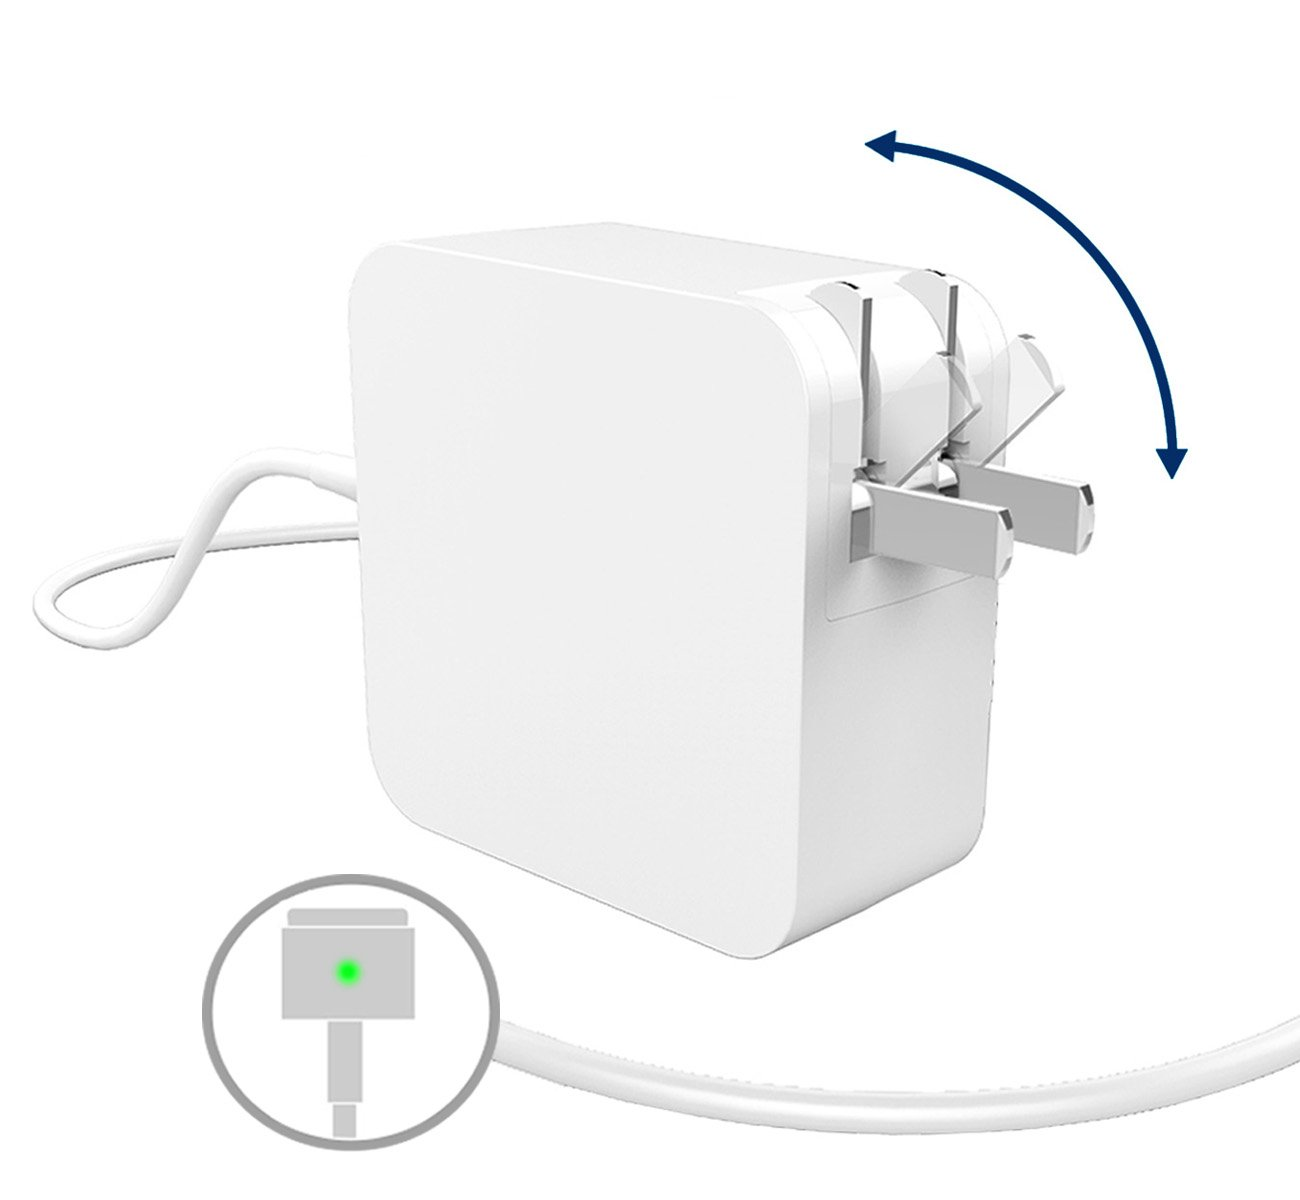 Replacement MacBook Air Charger, 45W MagSafe 2 Adapter, T tip, with 2.5m Extra Long Cable and Foldable Plug for Apple Macbook Air A1466/A1465/A1436, Macbook Air 11 inch & 13 inch (after 2012), Portabl